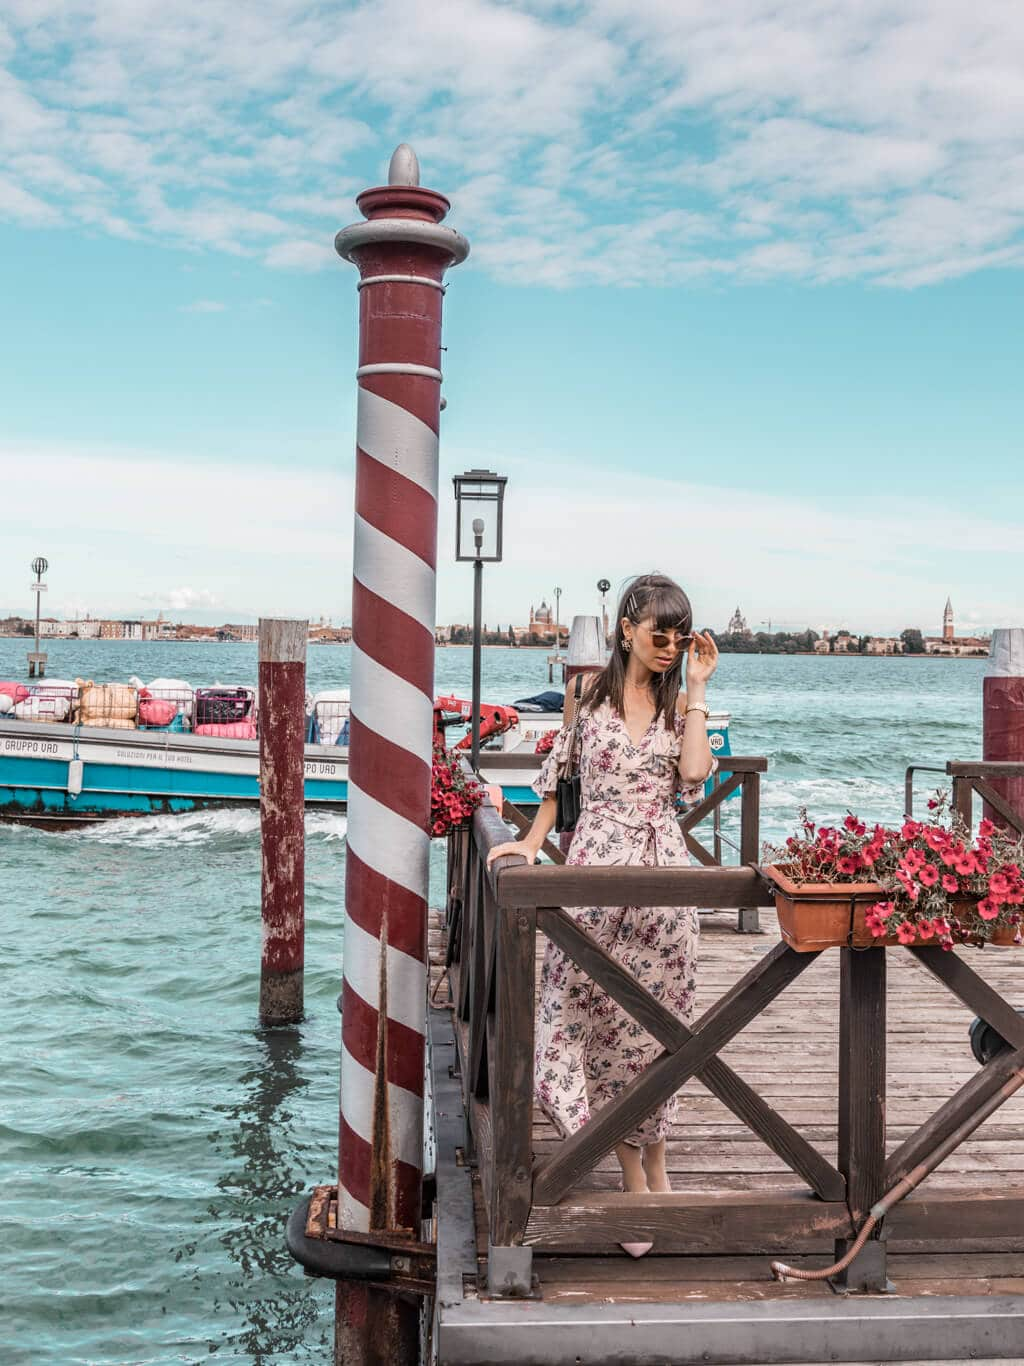 Instagram Outfits Round Up: Traveling In Italy